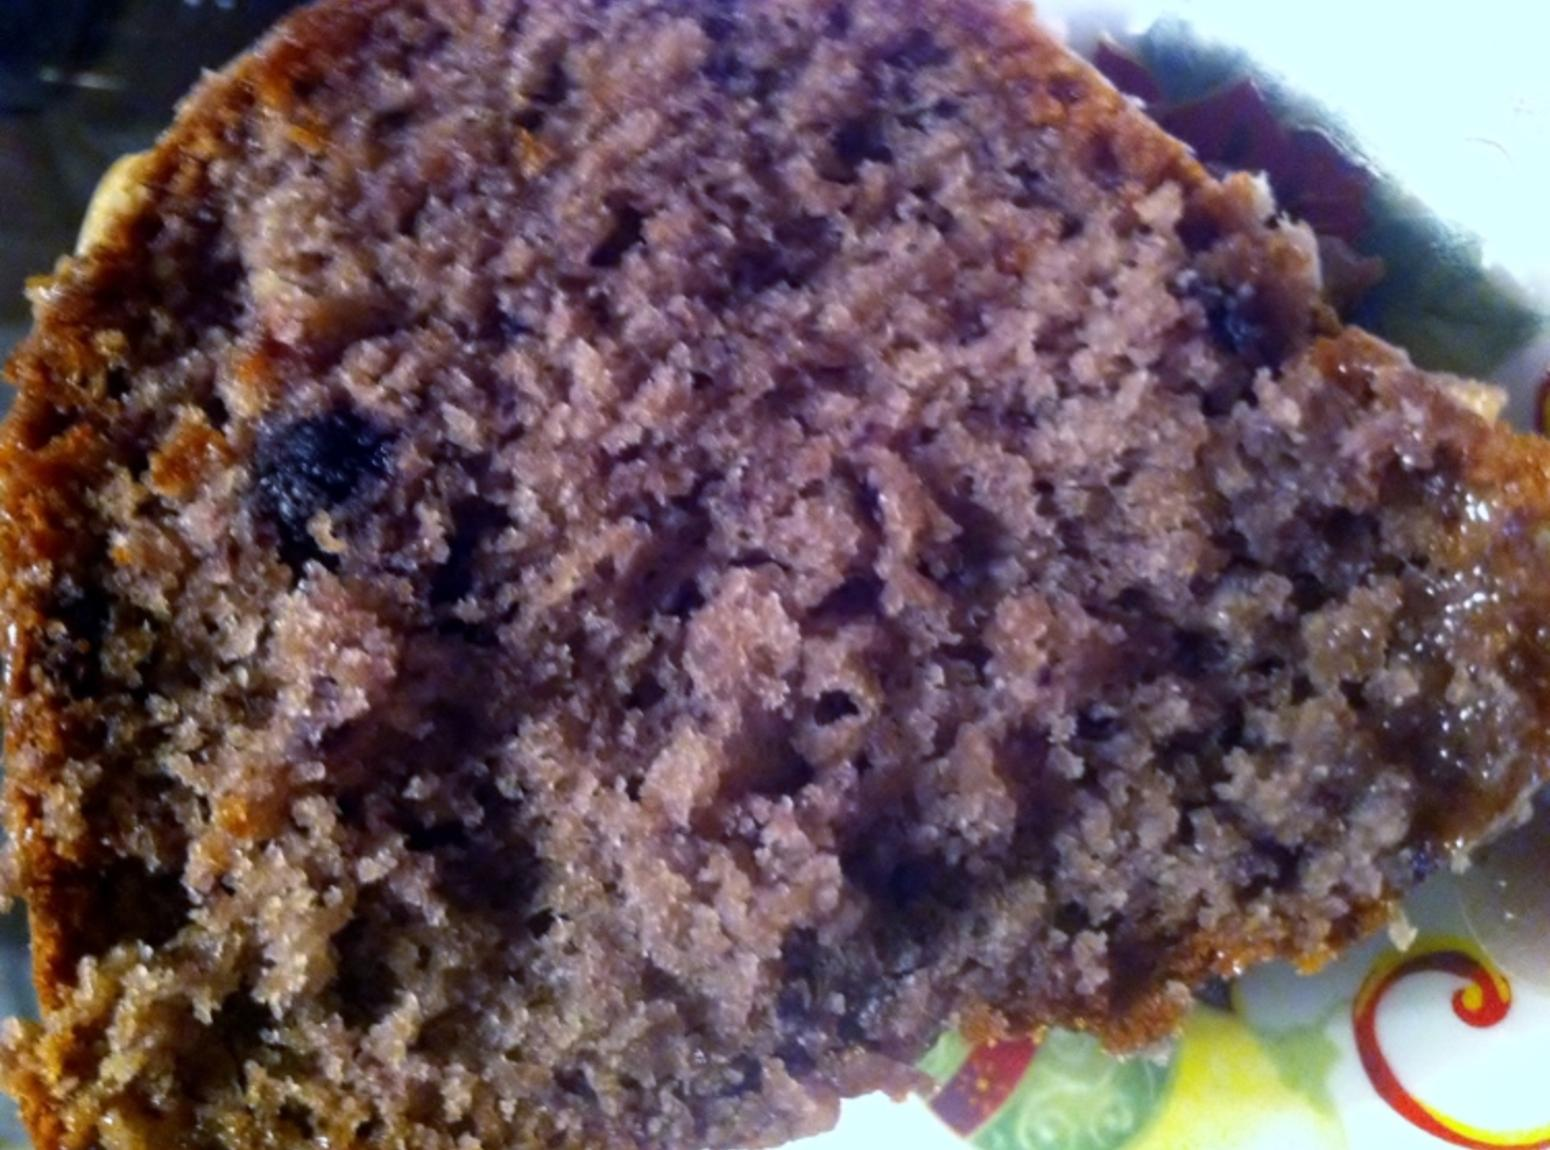 Blueberry Jam Cake or as I call it The Ugly Duckling Cake Recipe